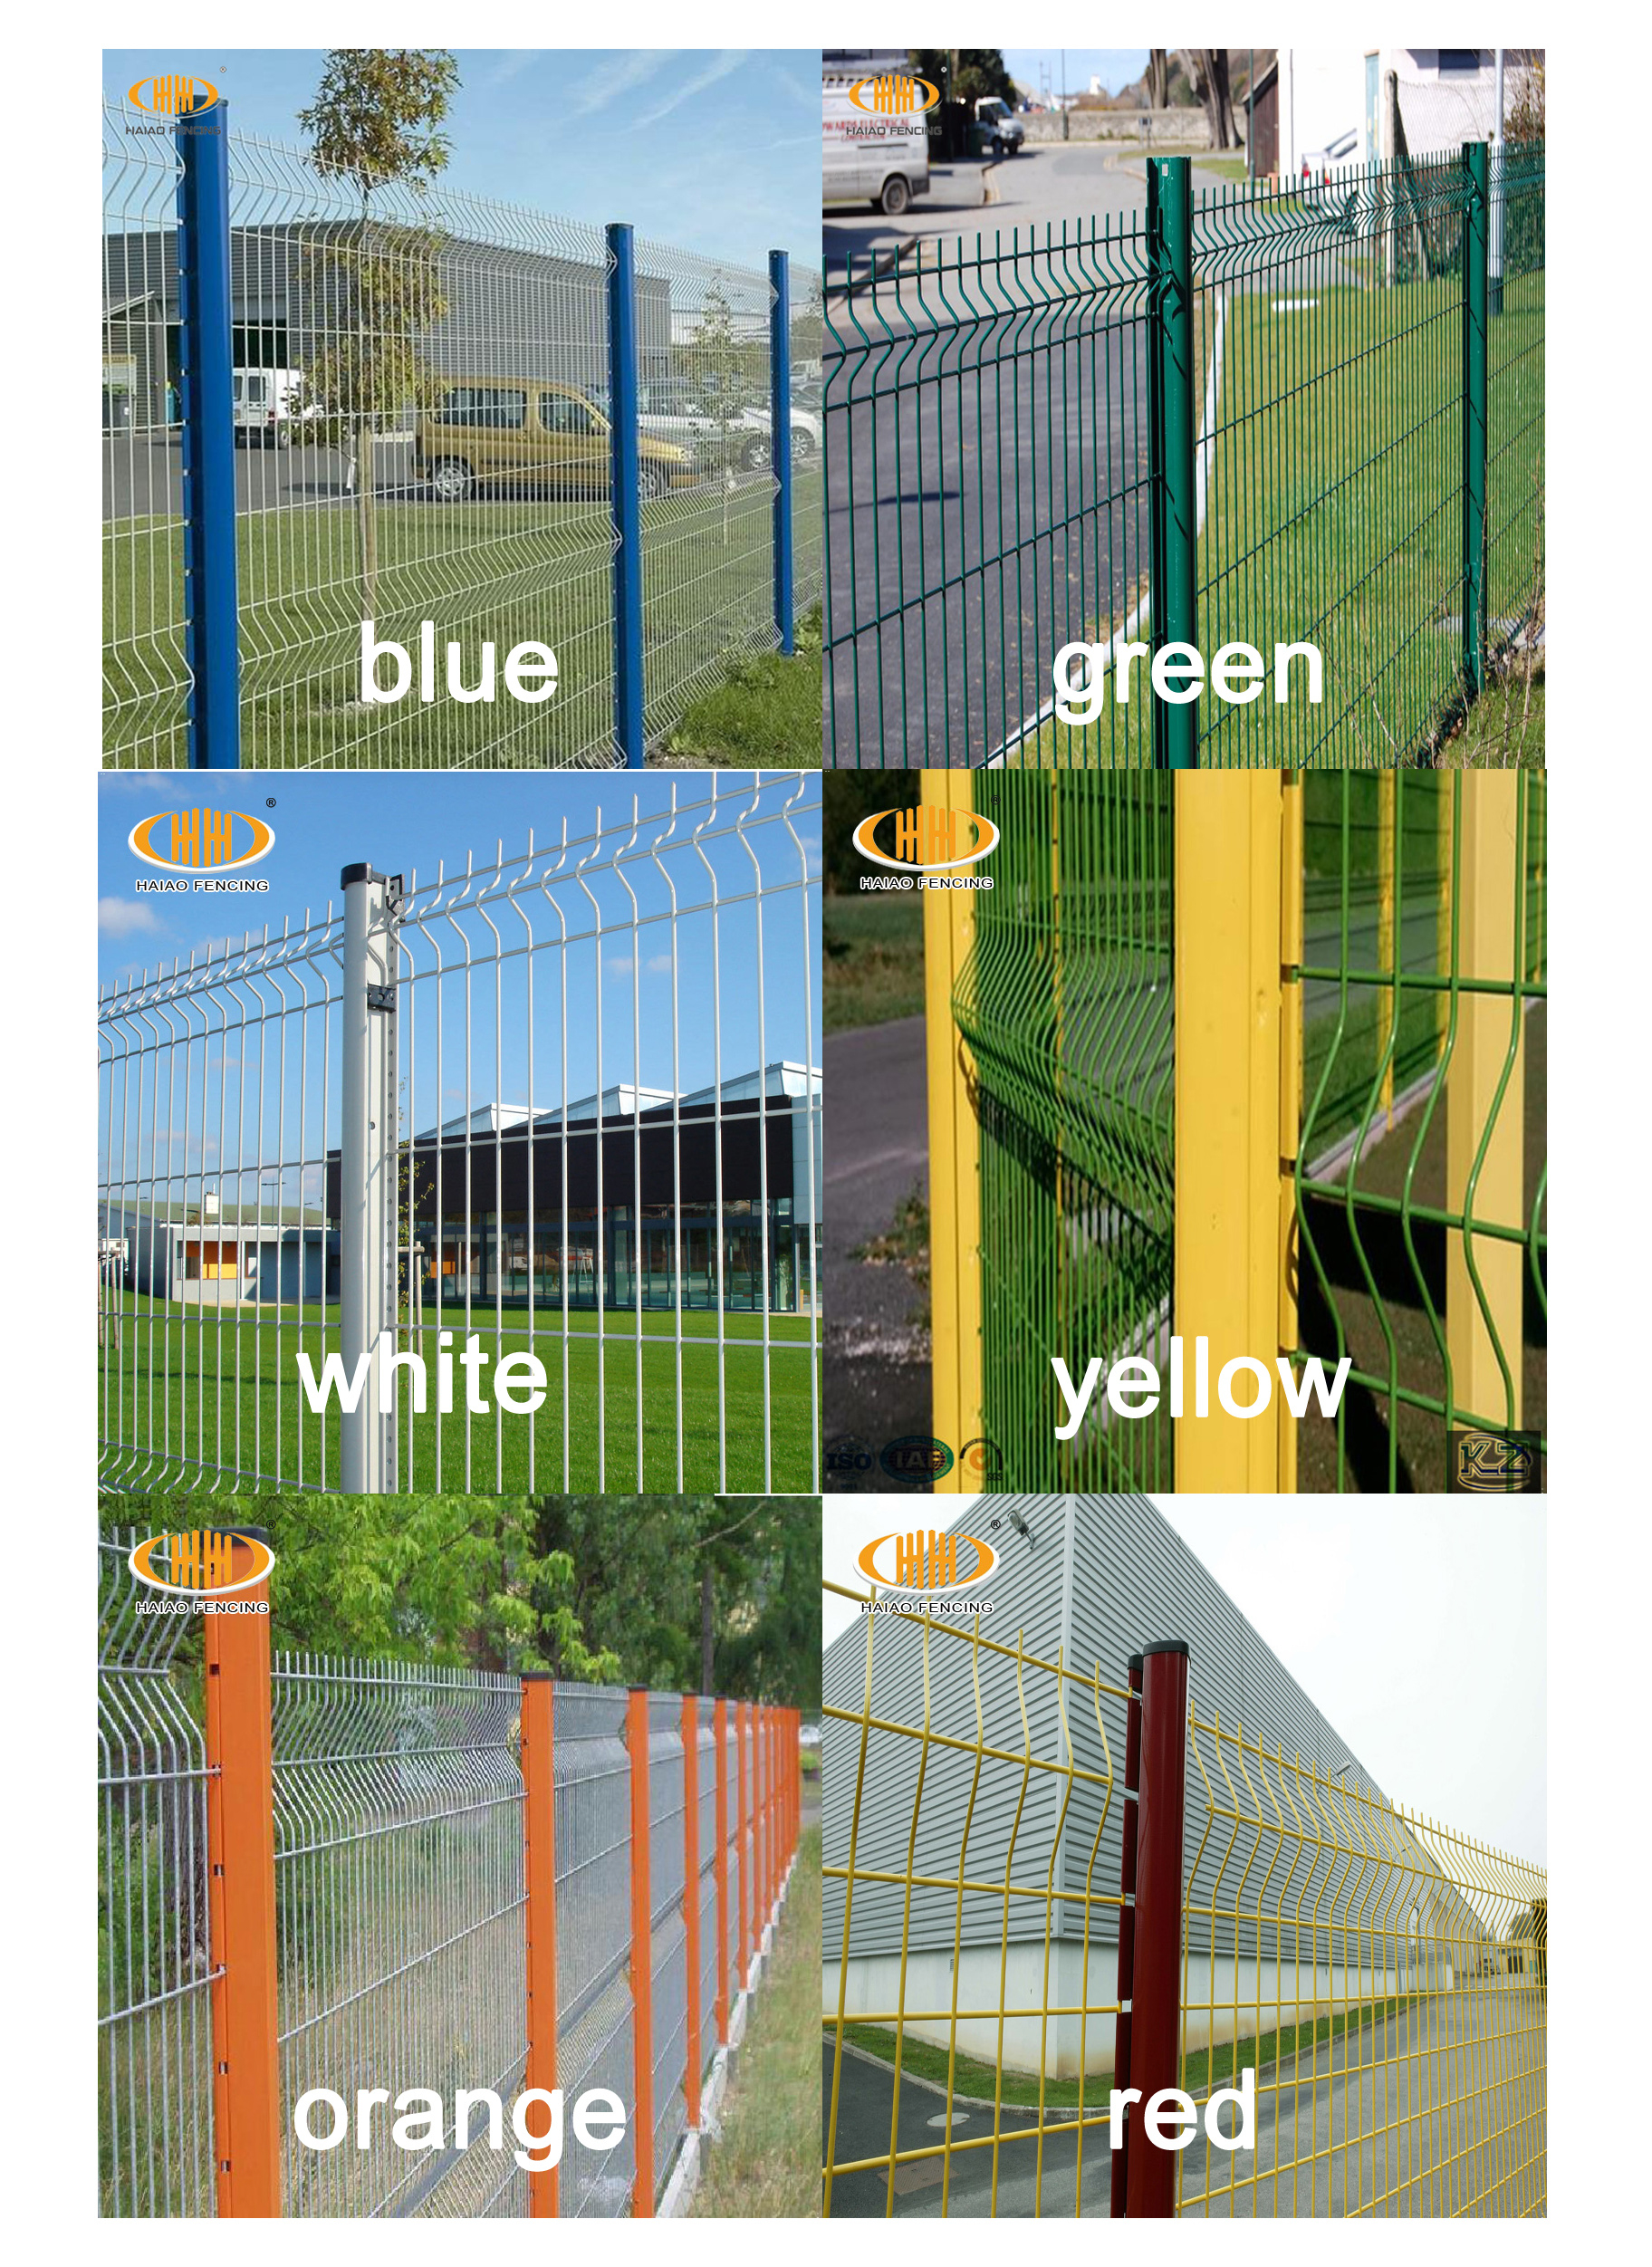 Grillage Rigide Cloture De Jardin, View Grillage Cloture Jardin, Haiao  Product Details From Hebei Haiao Wire Mesh Products Co., Ltd. On Alibaba concernant Grillage De Jardin Rigide